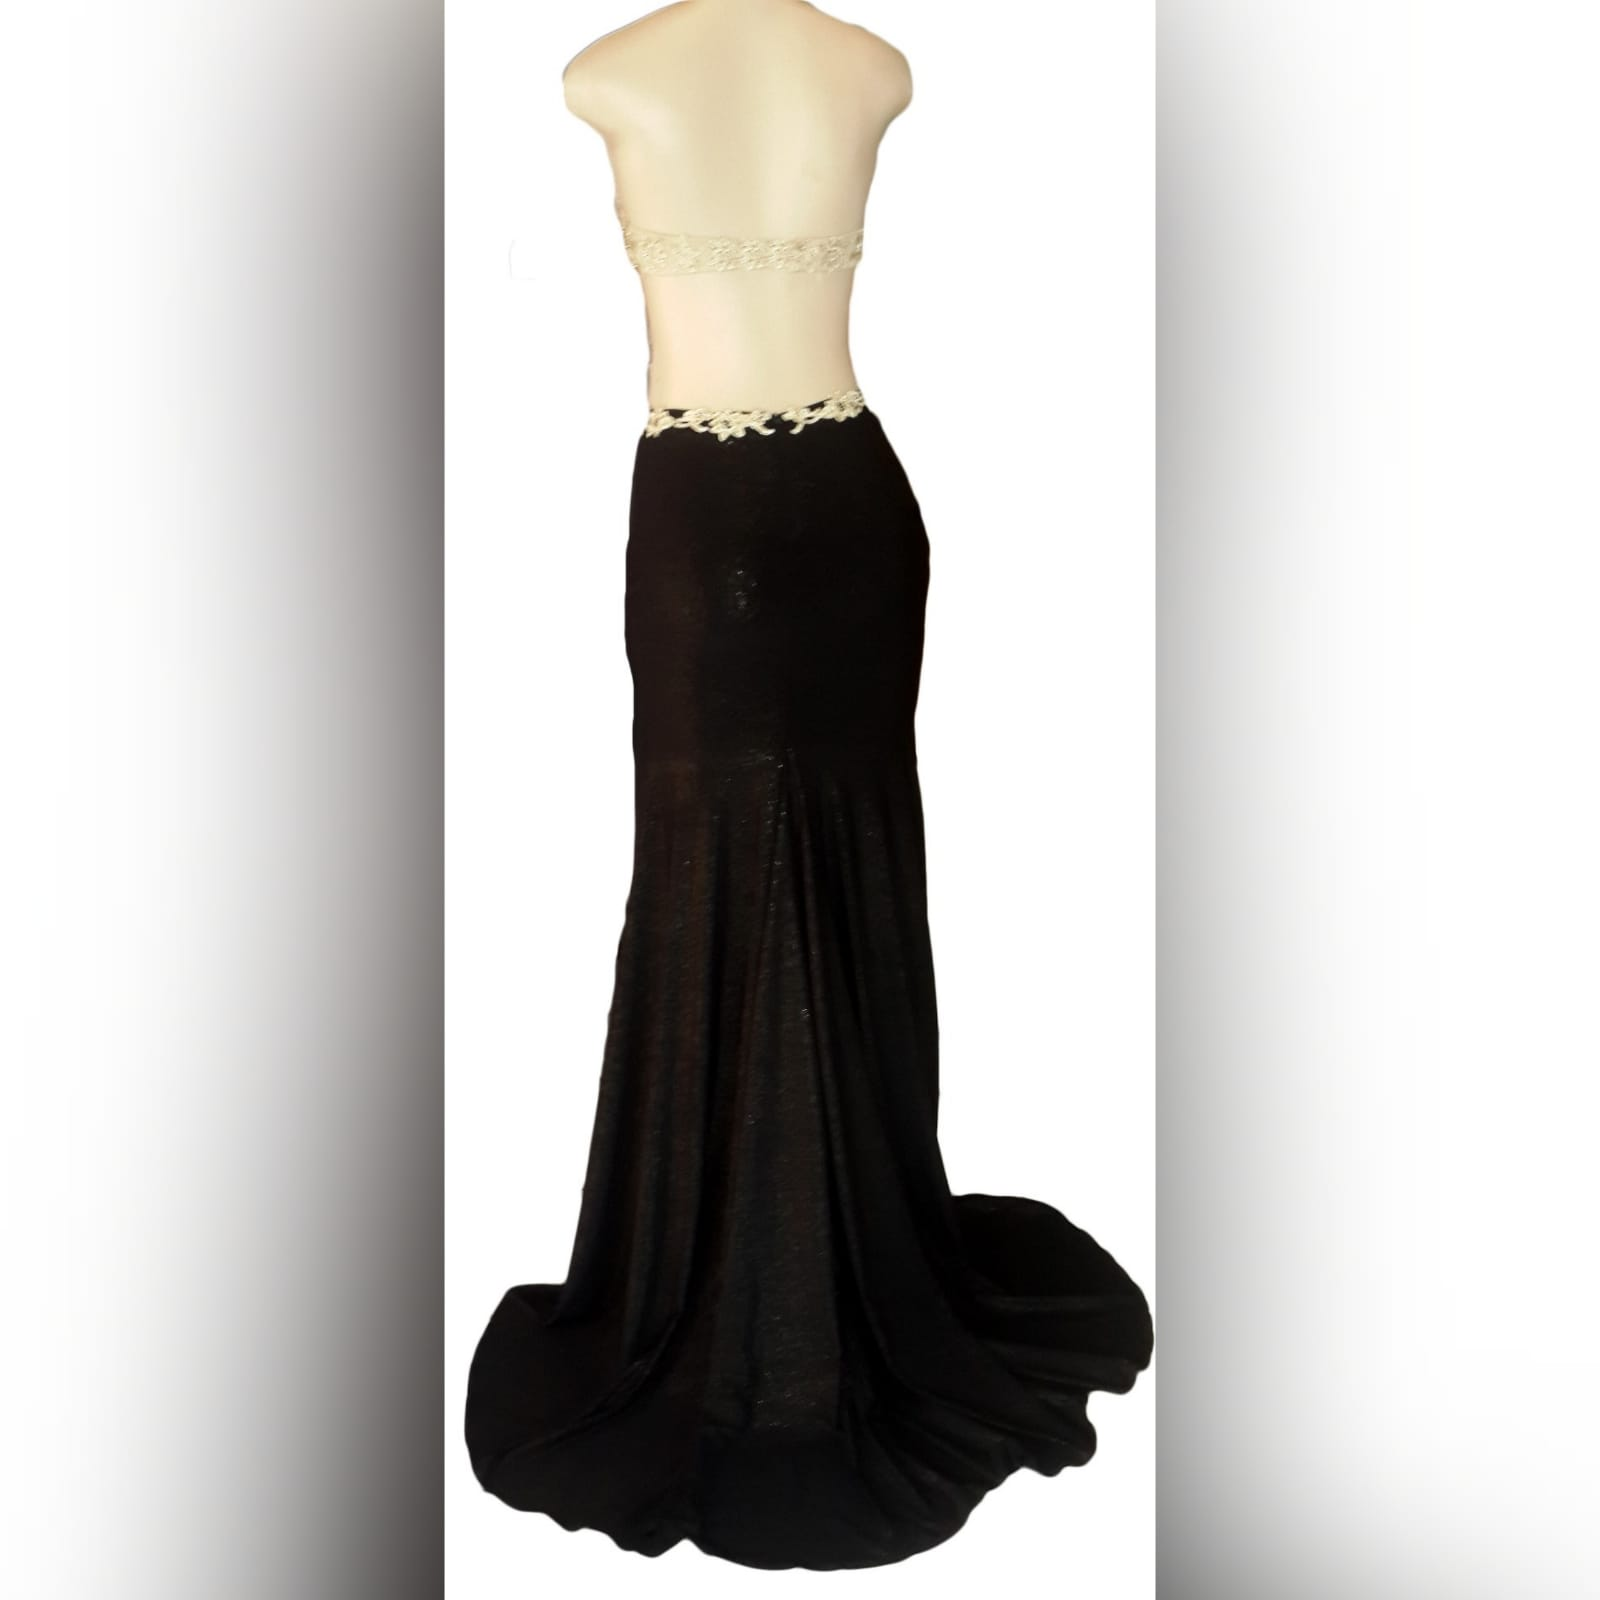 Black shimmer and gold pageant evening dress 6 black shimmer and gold pageant evening dress, with a naked back effect with strap detail, sheer tummy, with a slit and a train.